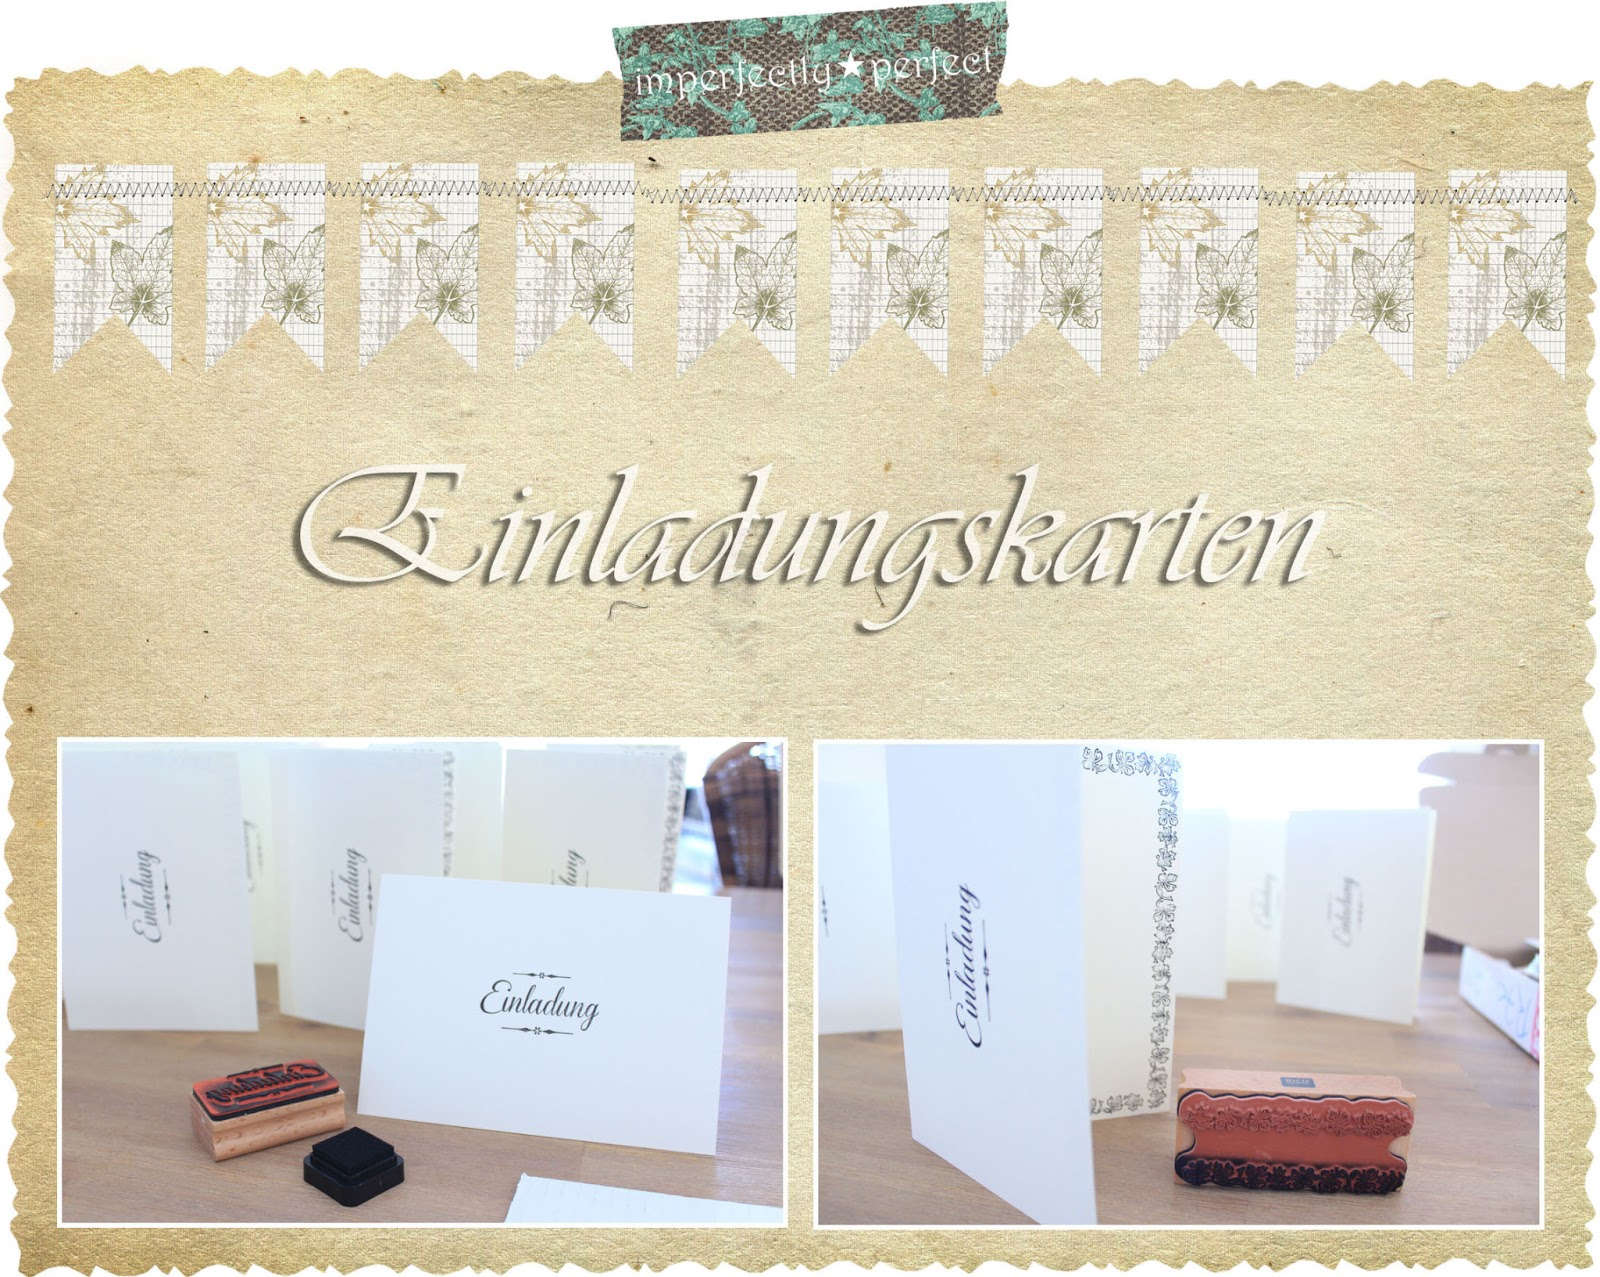 Diy Einladungskarten Imperfectlyperfect Diy Einladungskarten